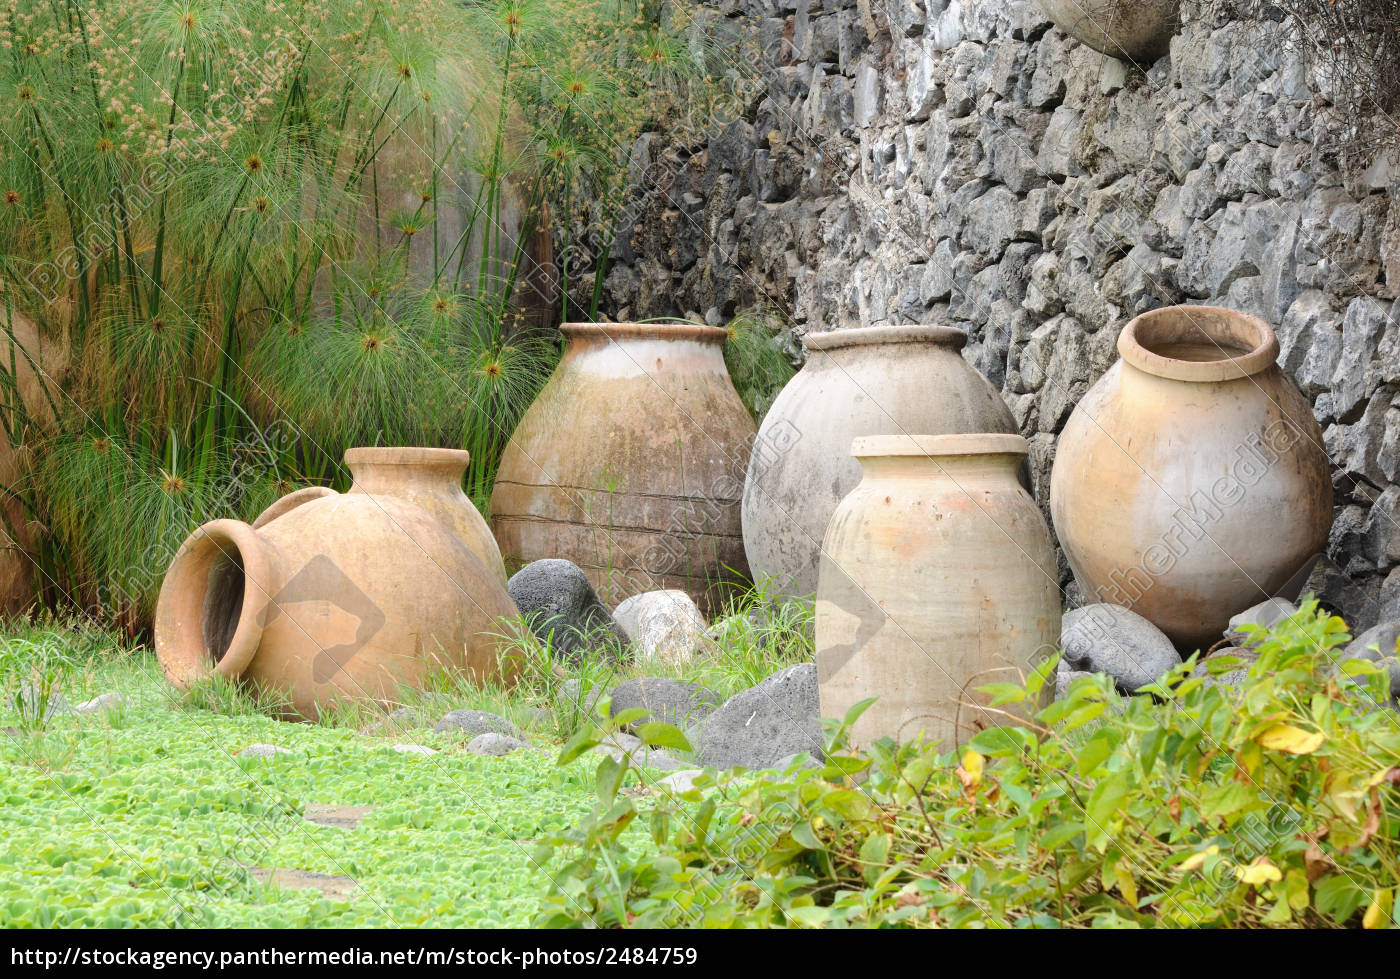 anfore in giardino stockphoto 2484759 comprate